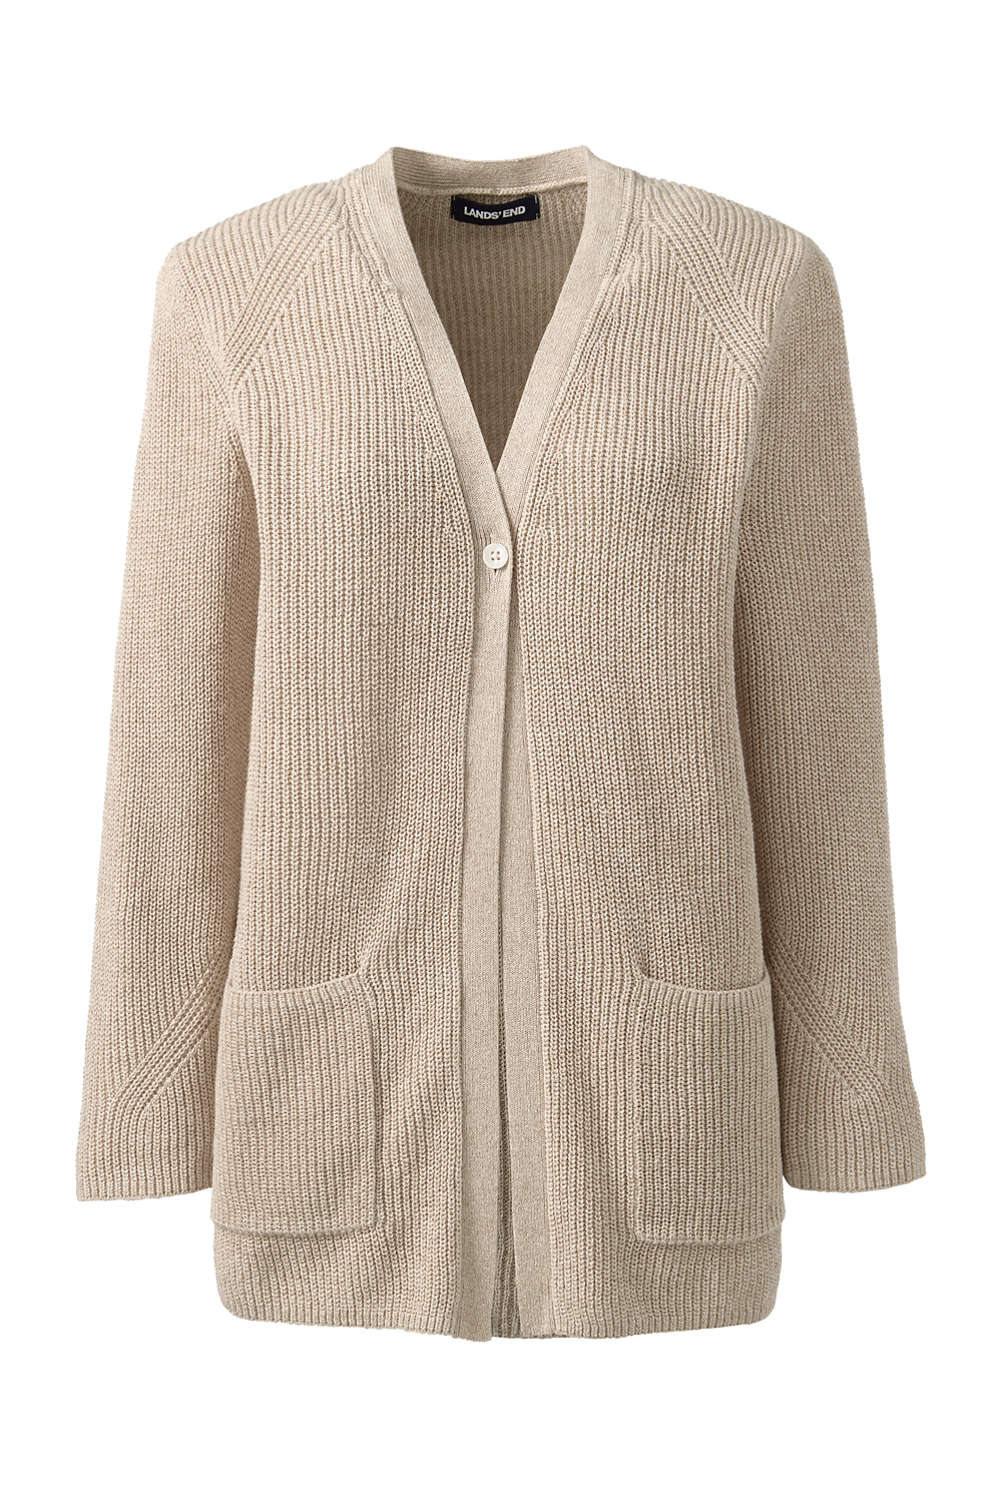 3bf33bc525af Women s Linen Cotton 3 4 Sleeve Shaker V-neck Cardigan Sweater from ...